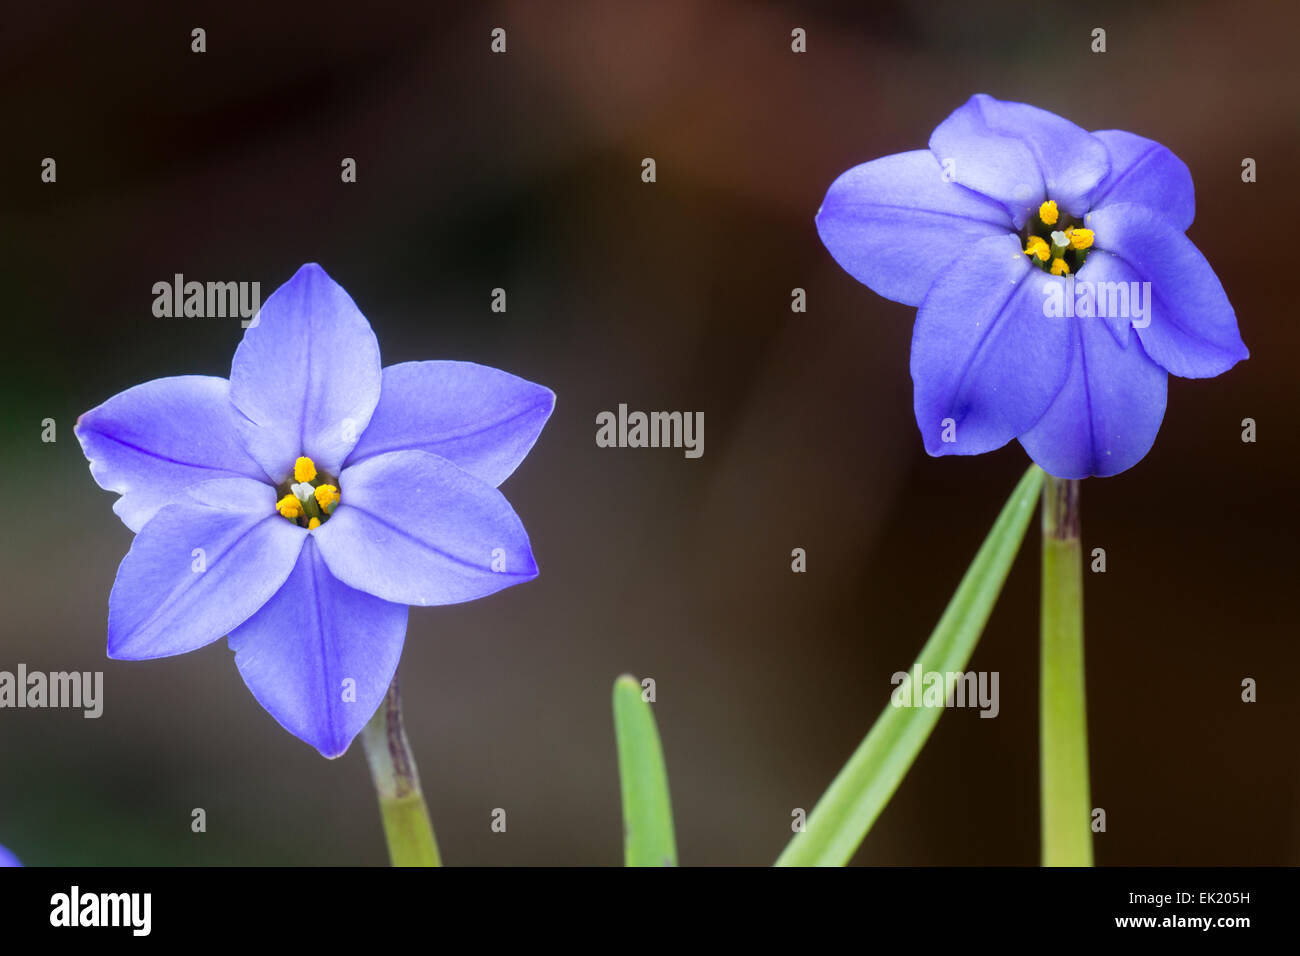 Flowers of the spring bulb, Ipheion uniflorum 'Jessie' - Stock Image